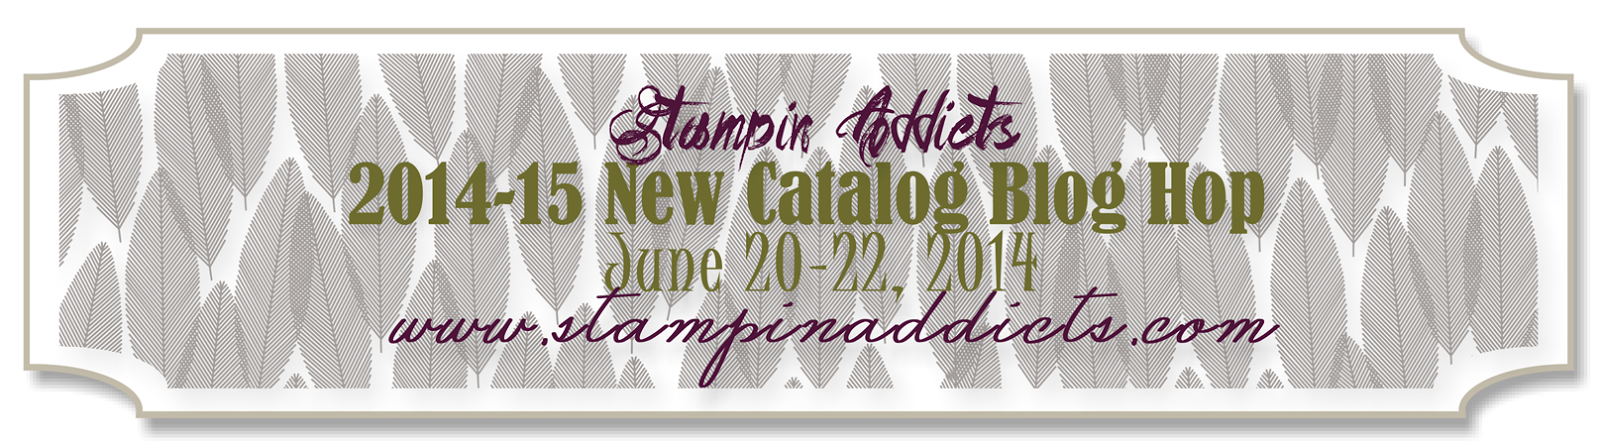 http://www.stampinaddicts.com/forums/general-stampin-talk/9523-new-catalog-blog-hop-starts-friday-june-20th.html